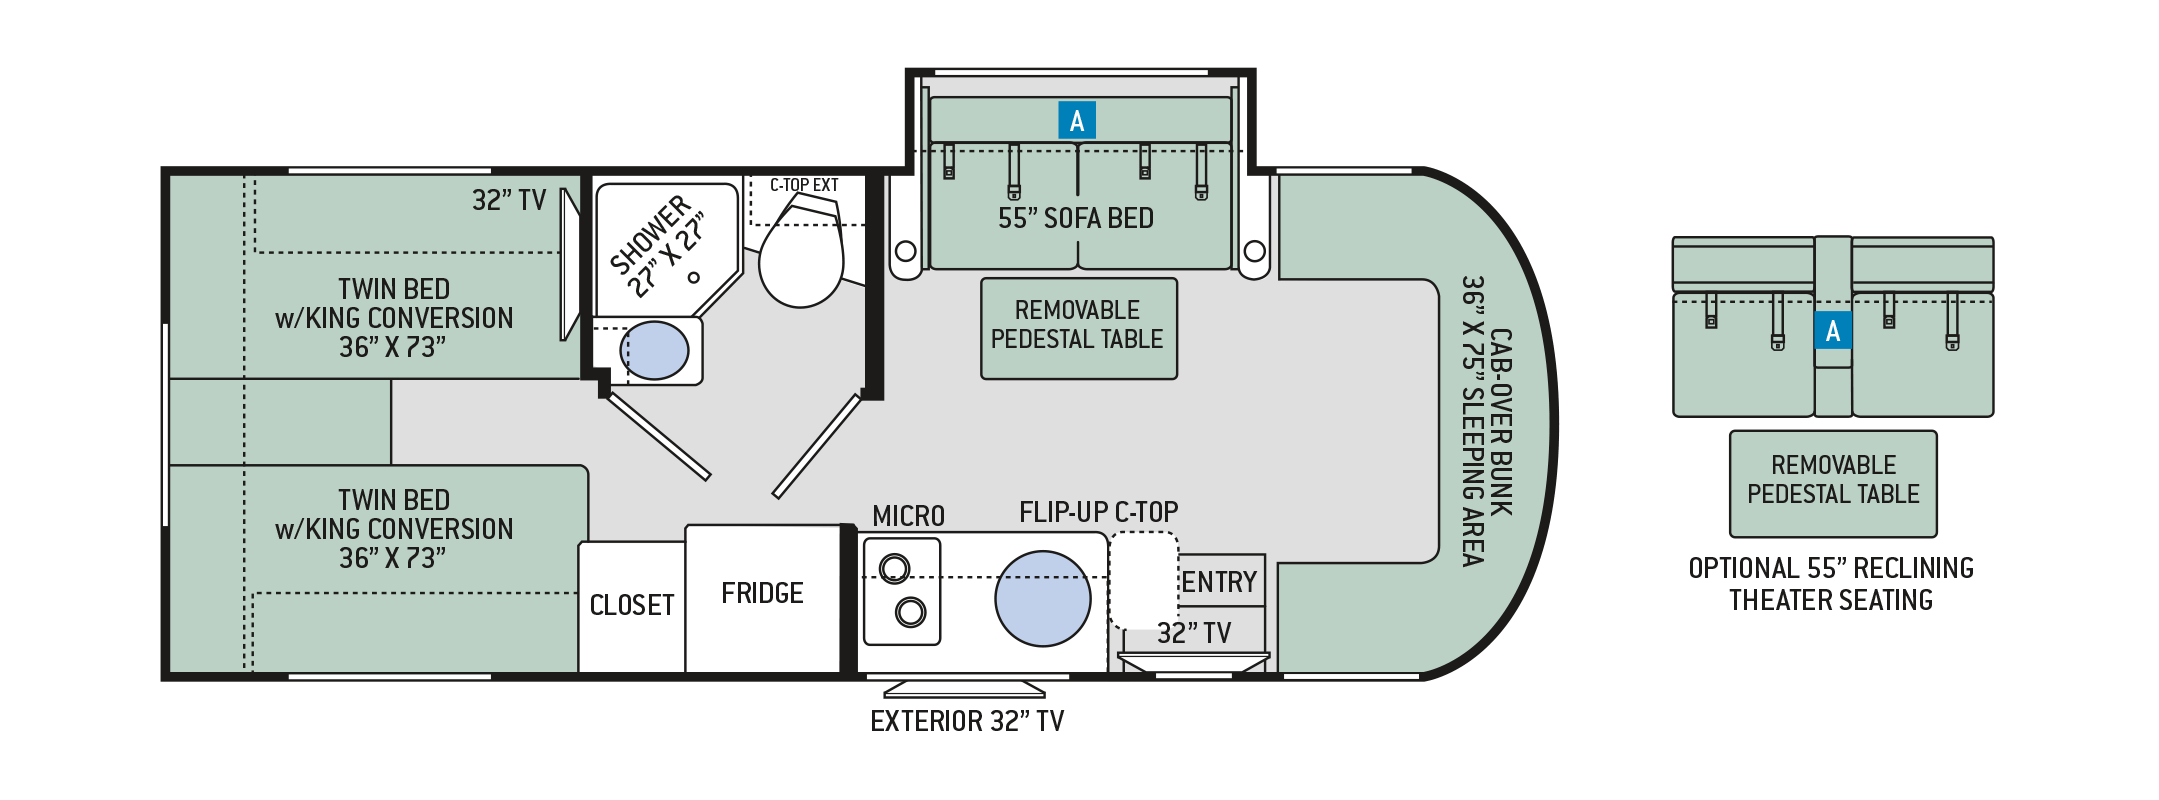 Mercedes Sprinter Floor Plan: Luxury Mercedes RV Rentals Denver